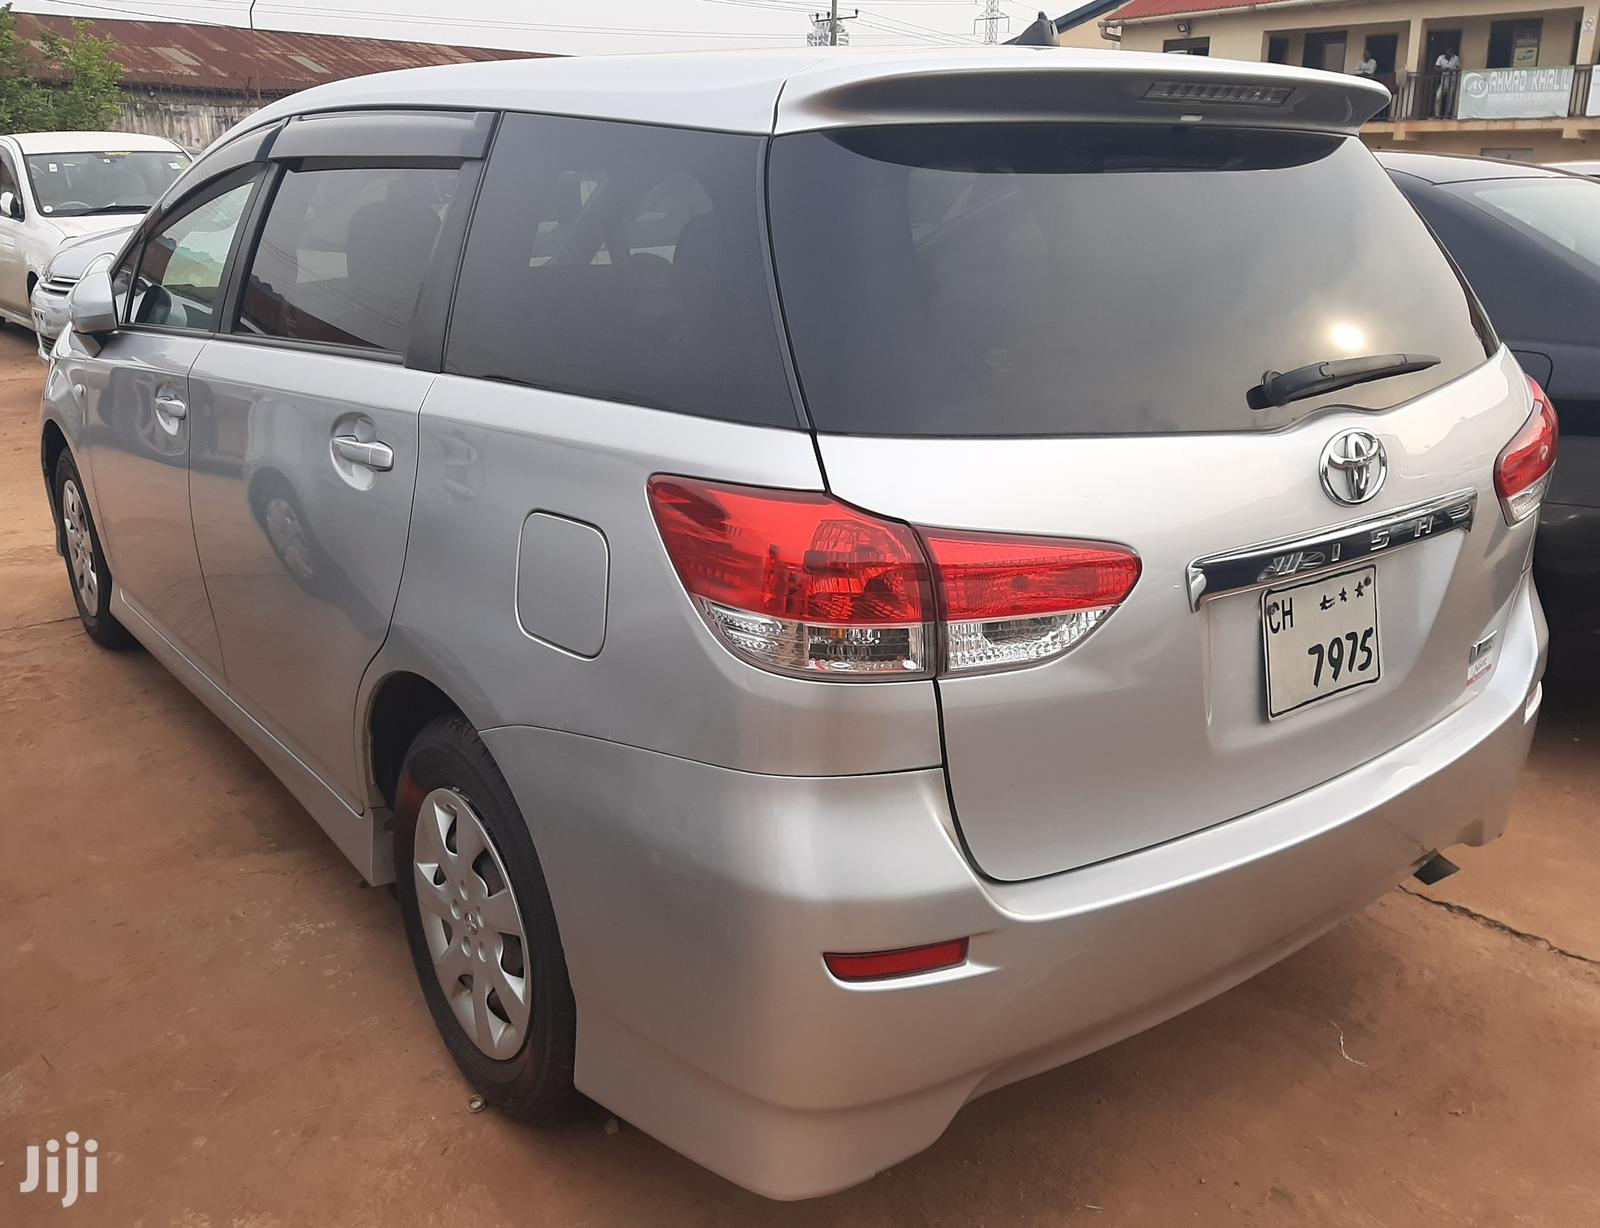 Toyota Wish 2009 Silver | Cars for sale in Kampala, Central Region, Uganda